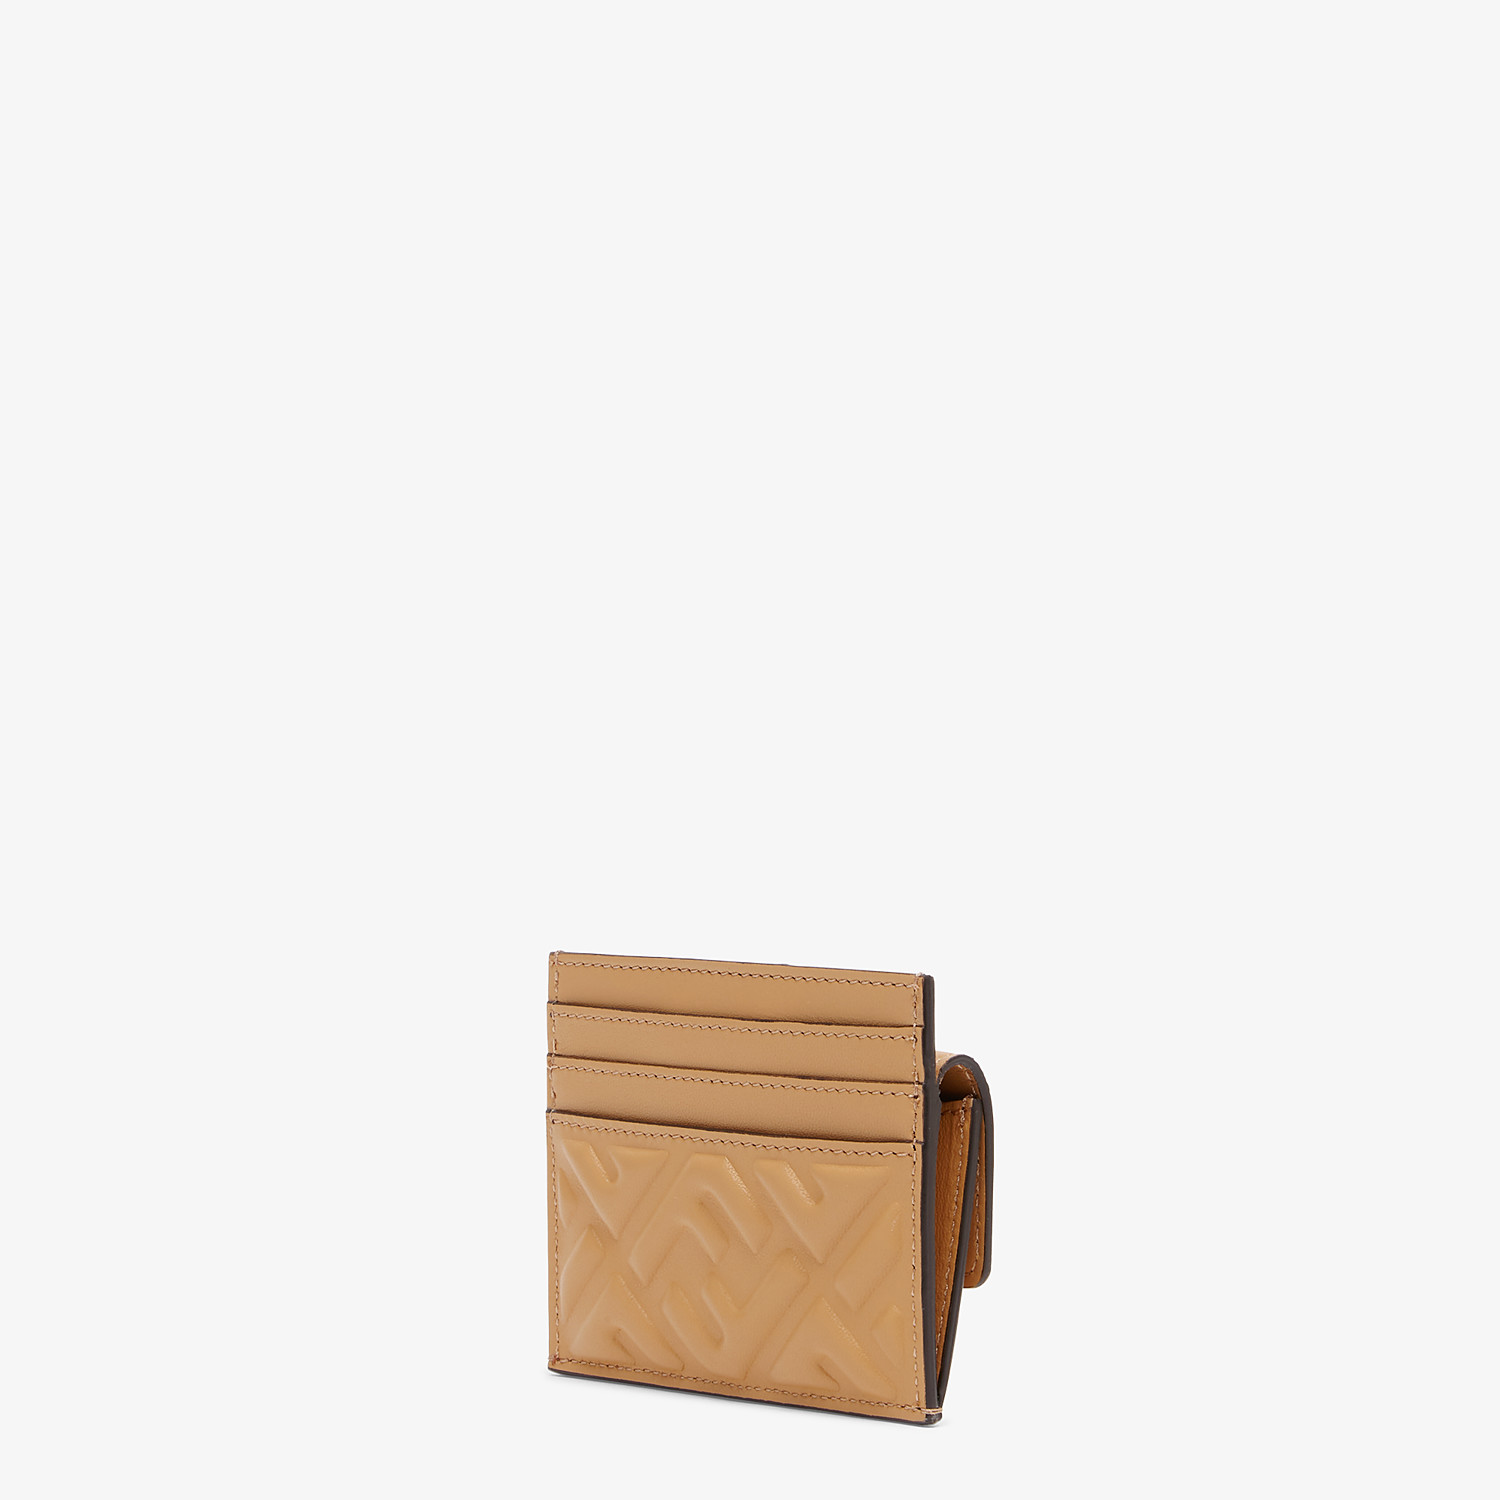 FENDI CARD HOLDER - Beige nappa leather card holder - view 2 detail